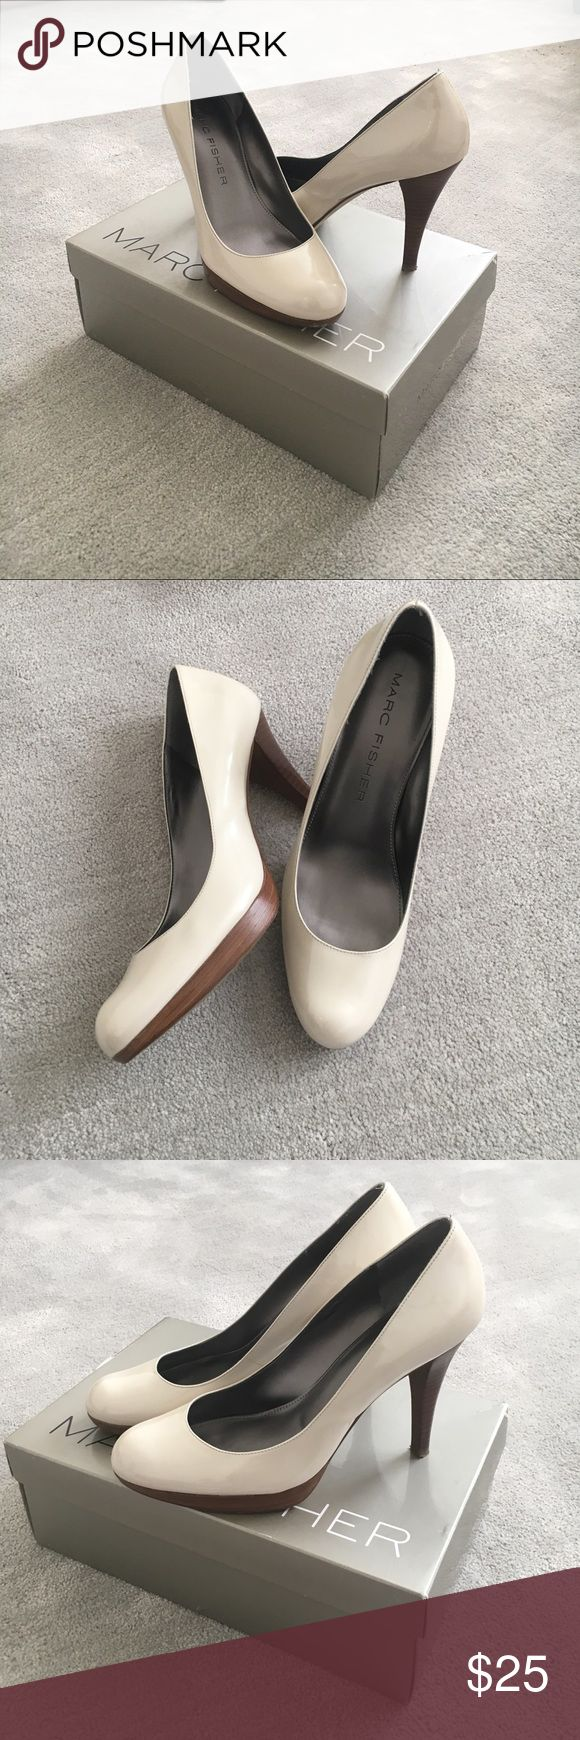 Marc Fisher classic patent cream pumps 👠 Great condition, only worn 2 times. Extremely comfortable and versatile for long events such as weddings or graduations. Goes with any outfit! Marc Fisher Shoes Heels